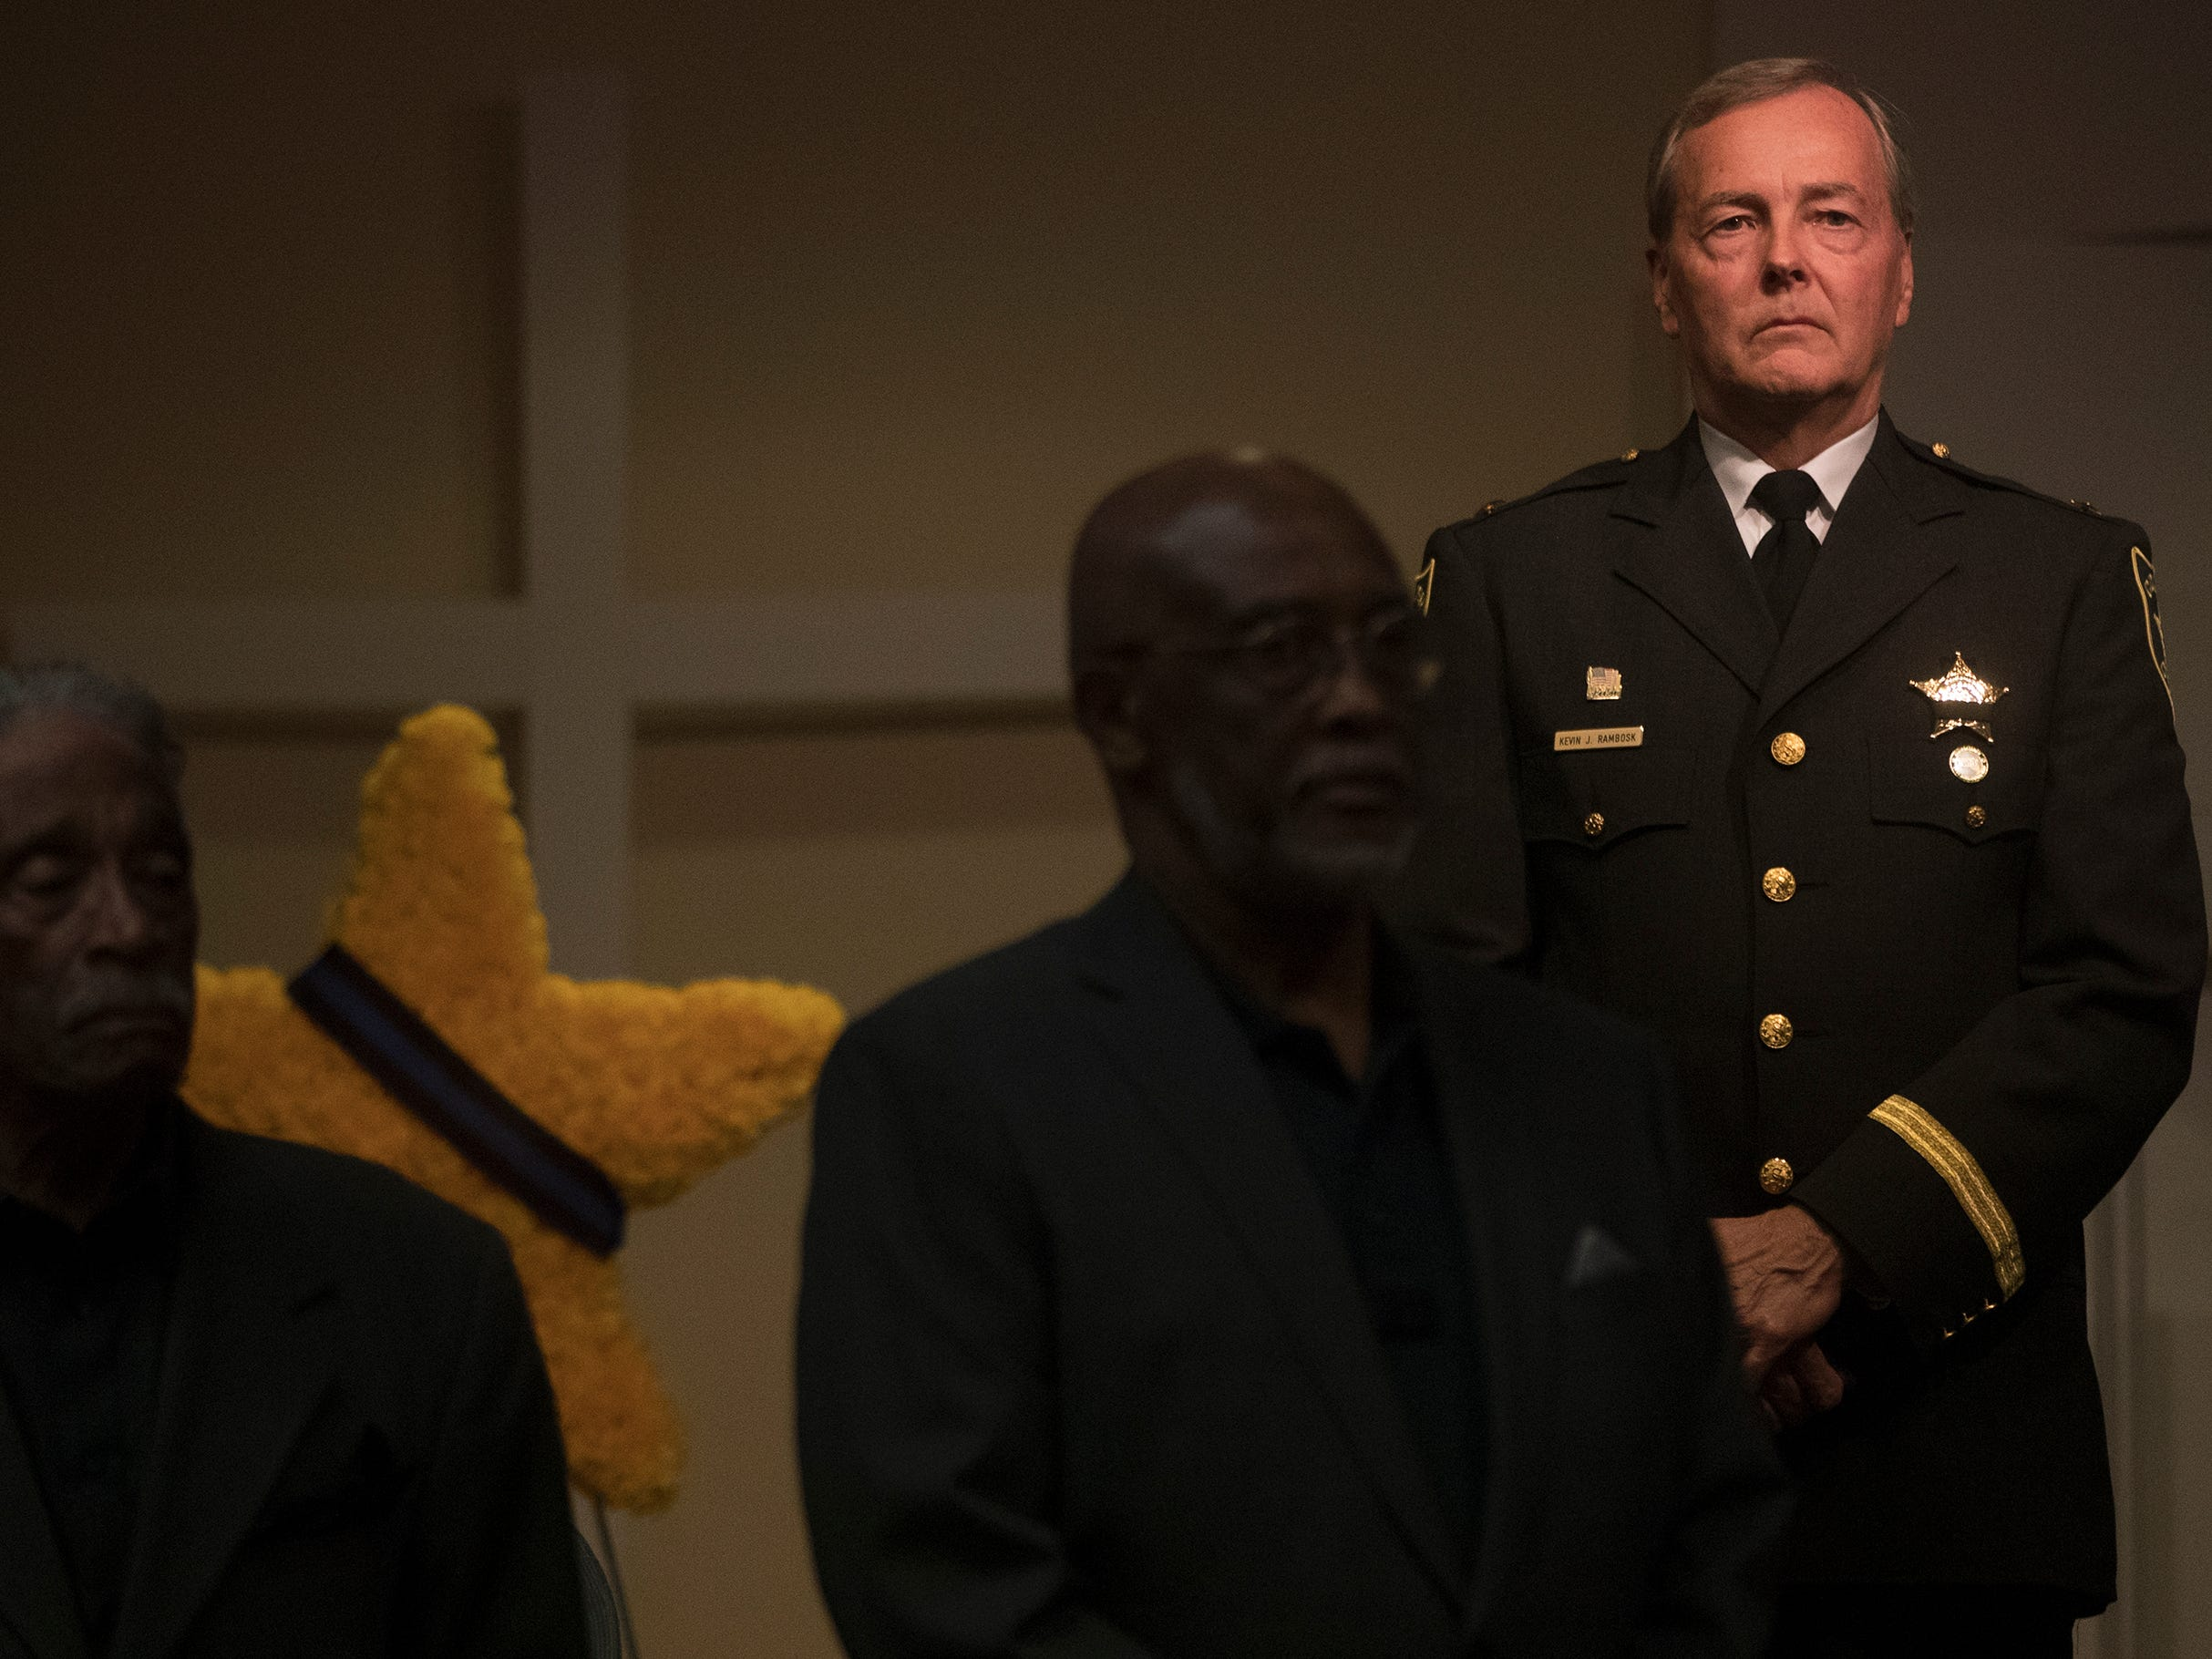 Collier County Sheriff Kevin Rambosk, right, was among those honoring local law enforcement officers killed in the line of duty at a memorial on Wednesday at East Naples United Methodist Church. Thirteen officers have been killed in Collier County since 1928.